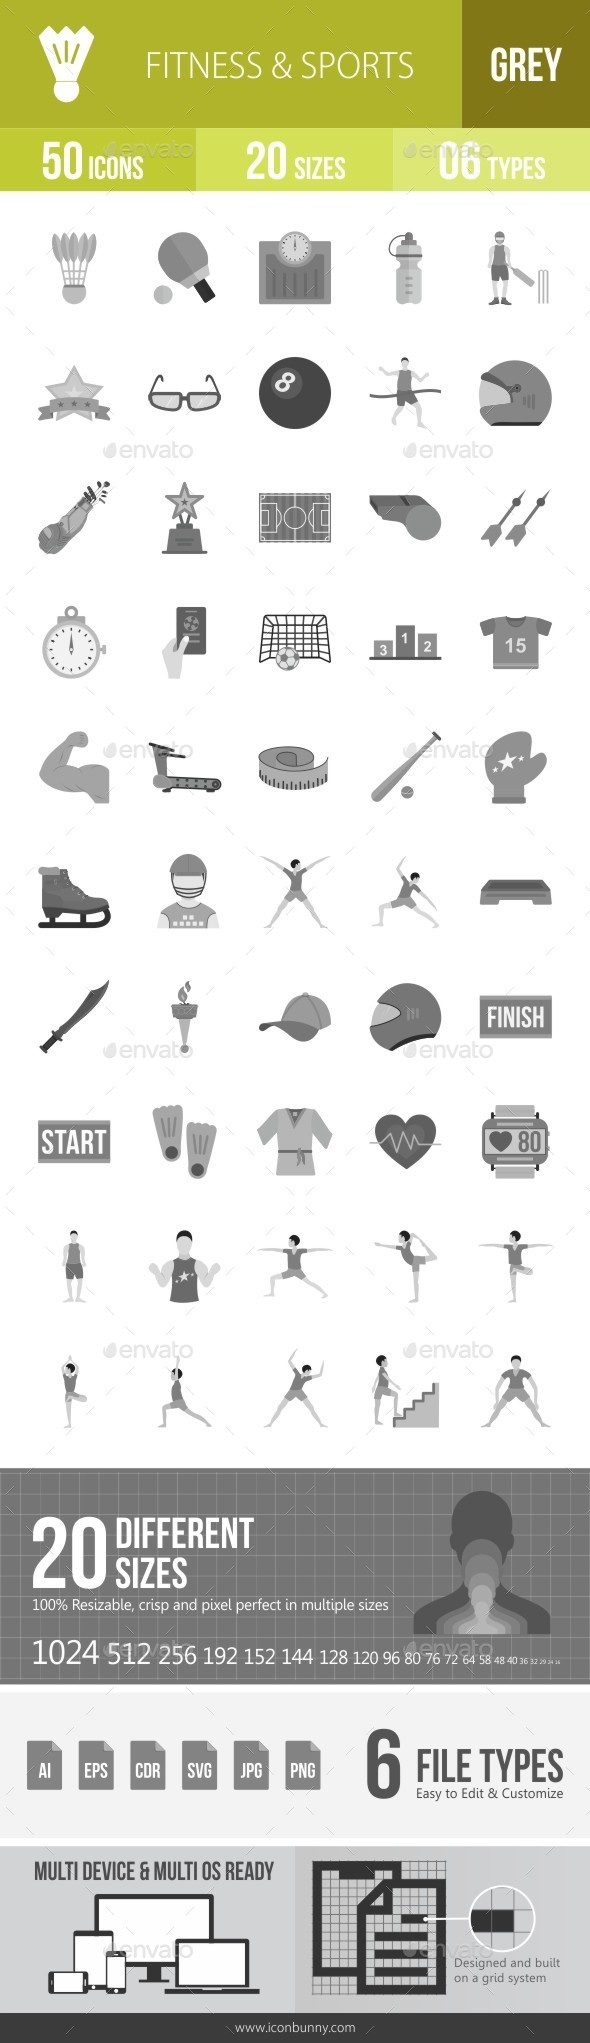 Fitness & Sports Greyscale Icons - Icons